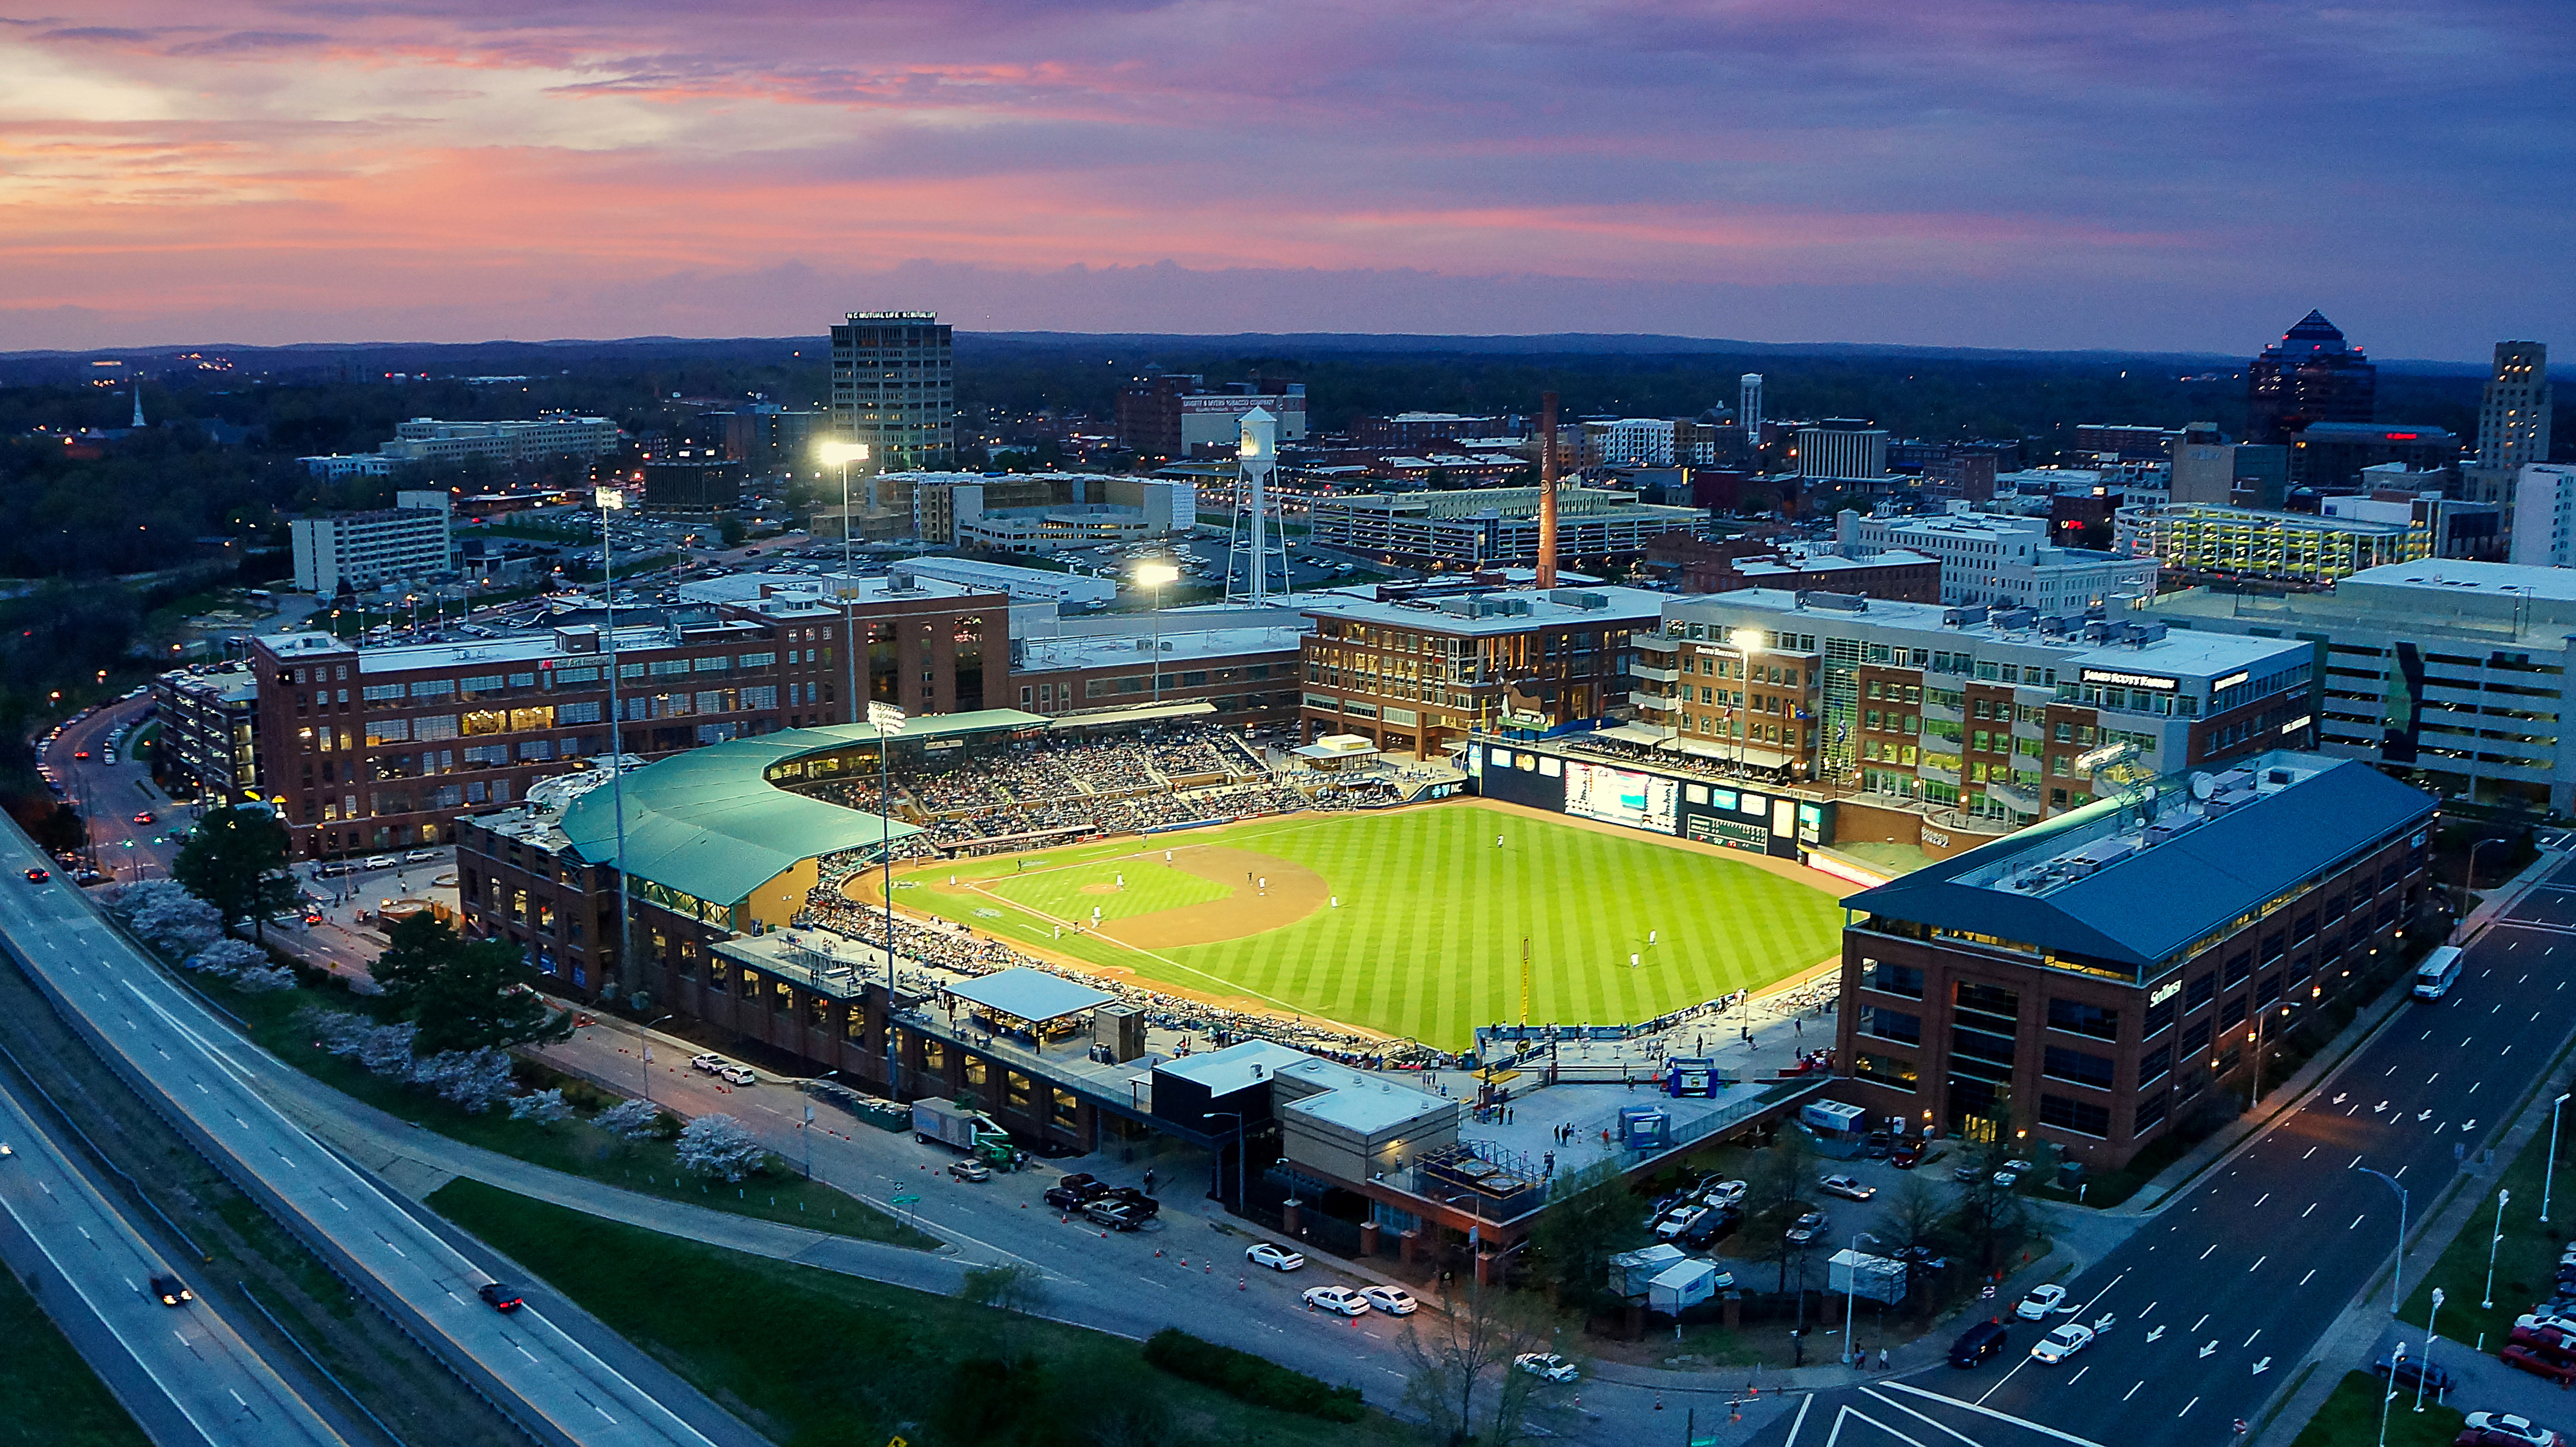 drone usa with Durham Bulls Athletic Park Durham Nc Usa on Tanitim Tarihi Belli Olan 2018 Volkswagen Jetta Icin Beklentileri Artiran Aciklamalar in addition Yellow Bee Hive On A White Background Bee Hive Isolate Stock Vector Illustration Of Bee House With A Circular Entrance Vector 18848717 besides Durham Bulls Athletic Park Durham Nc Usa together with Hong Kong Drone 7dc166fe 06f0 4c39 8ef0 4e75c6cc799e as well Forget Apple Pay And Bitcoin Emojis Are The New Currency At Dominos 2015 05 13.